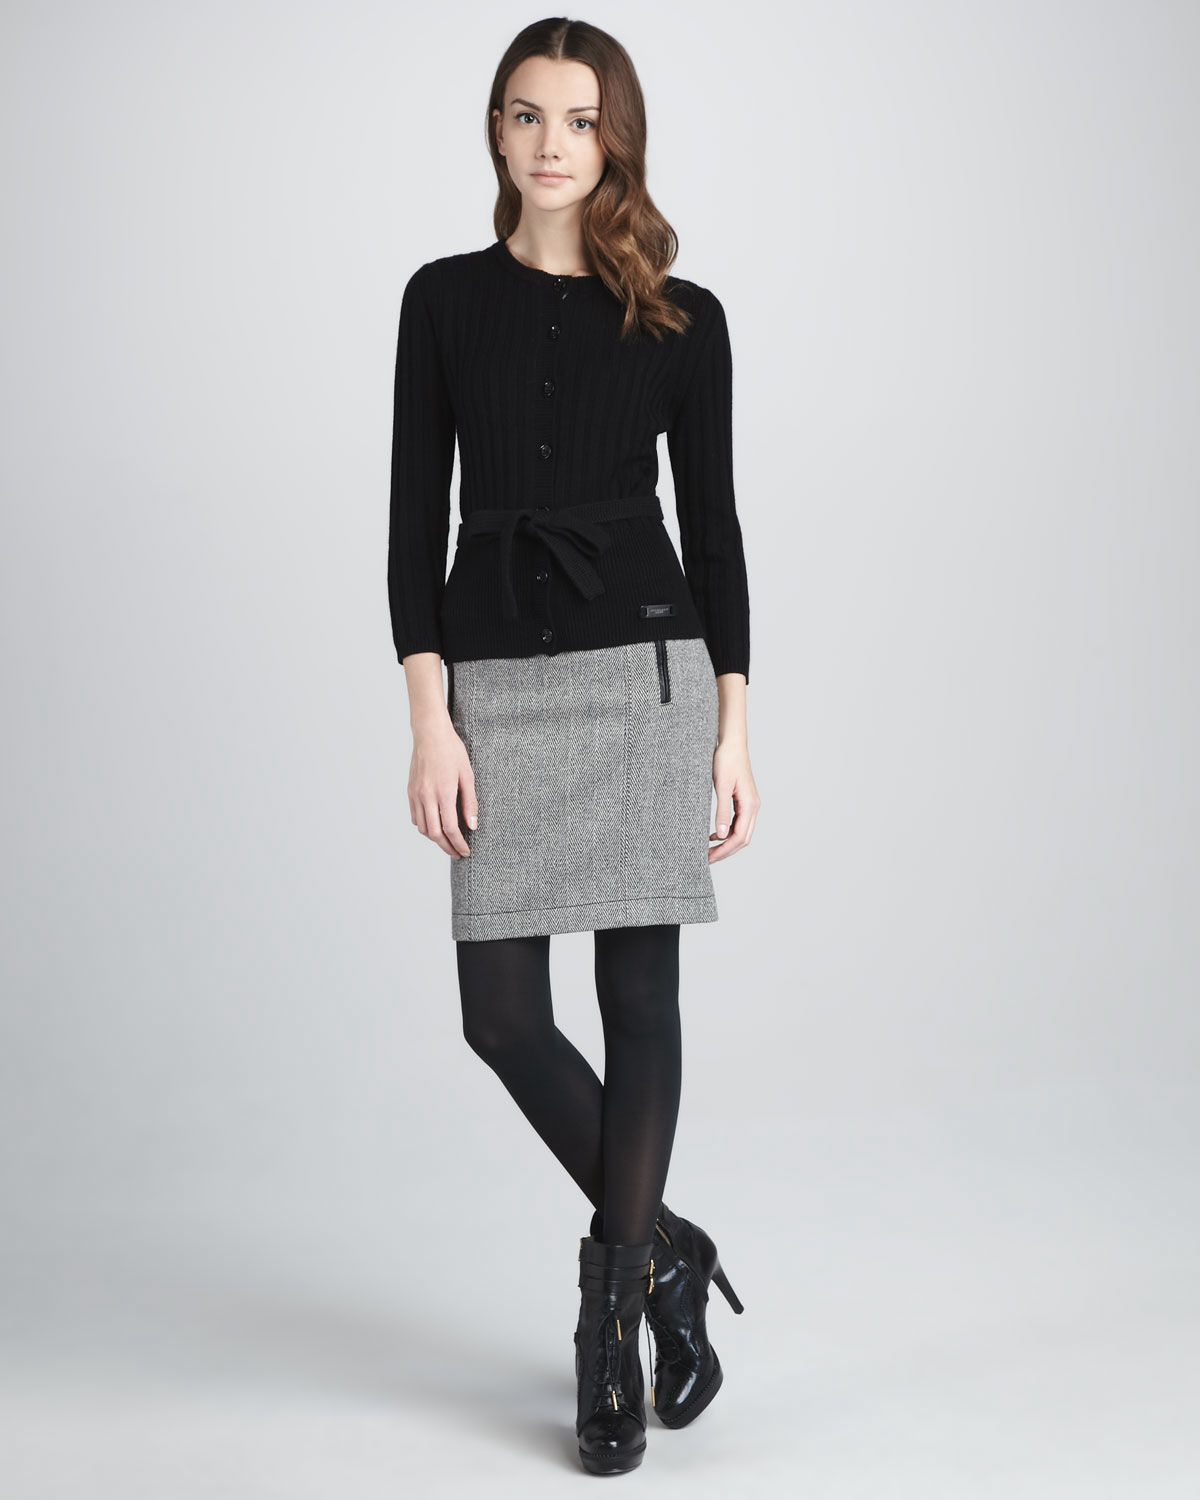 Skirt with black leggings and booties. | Fashion Changes but Style Eu2026